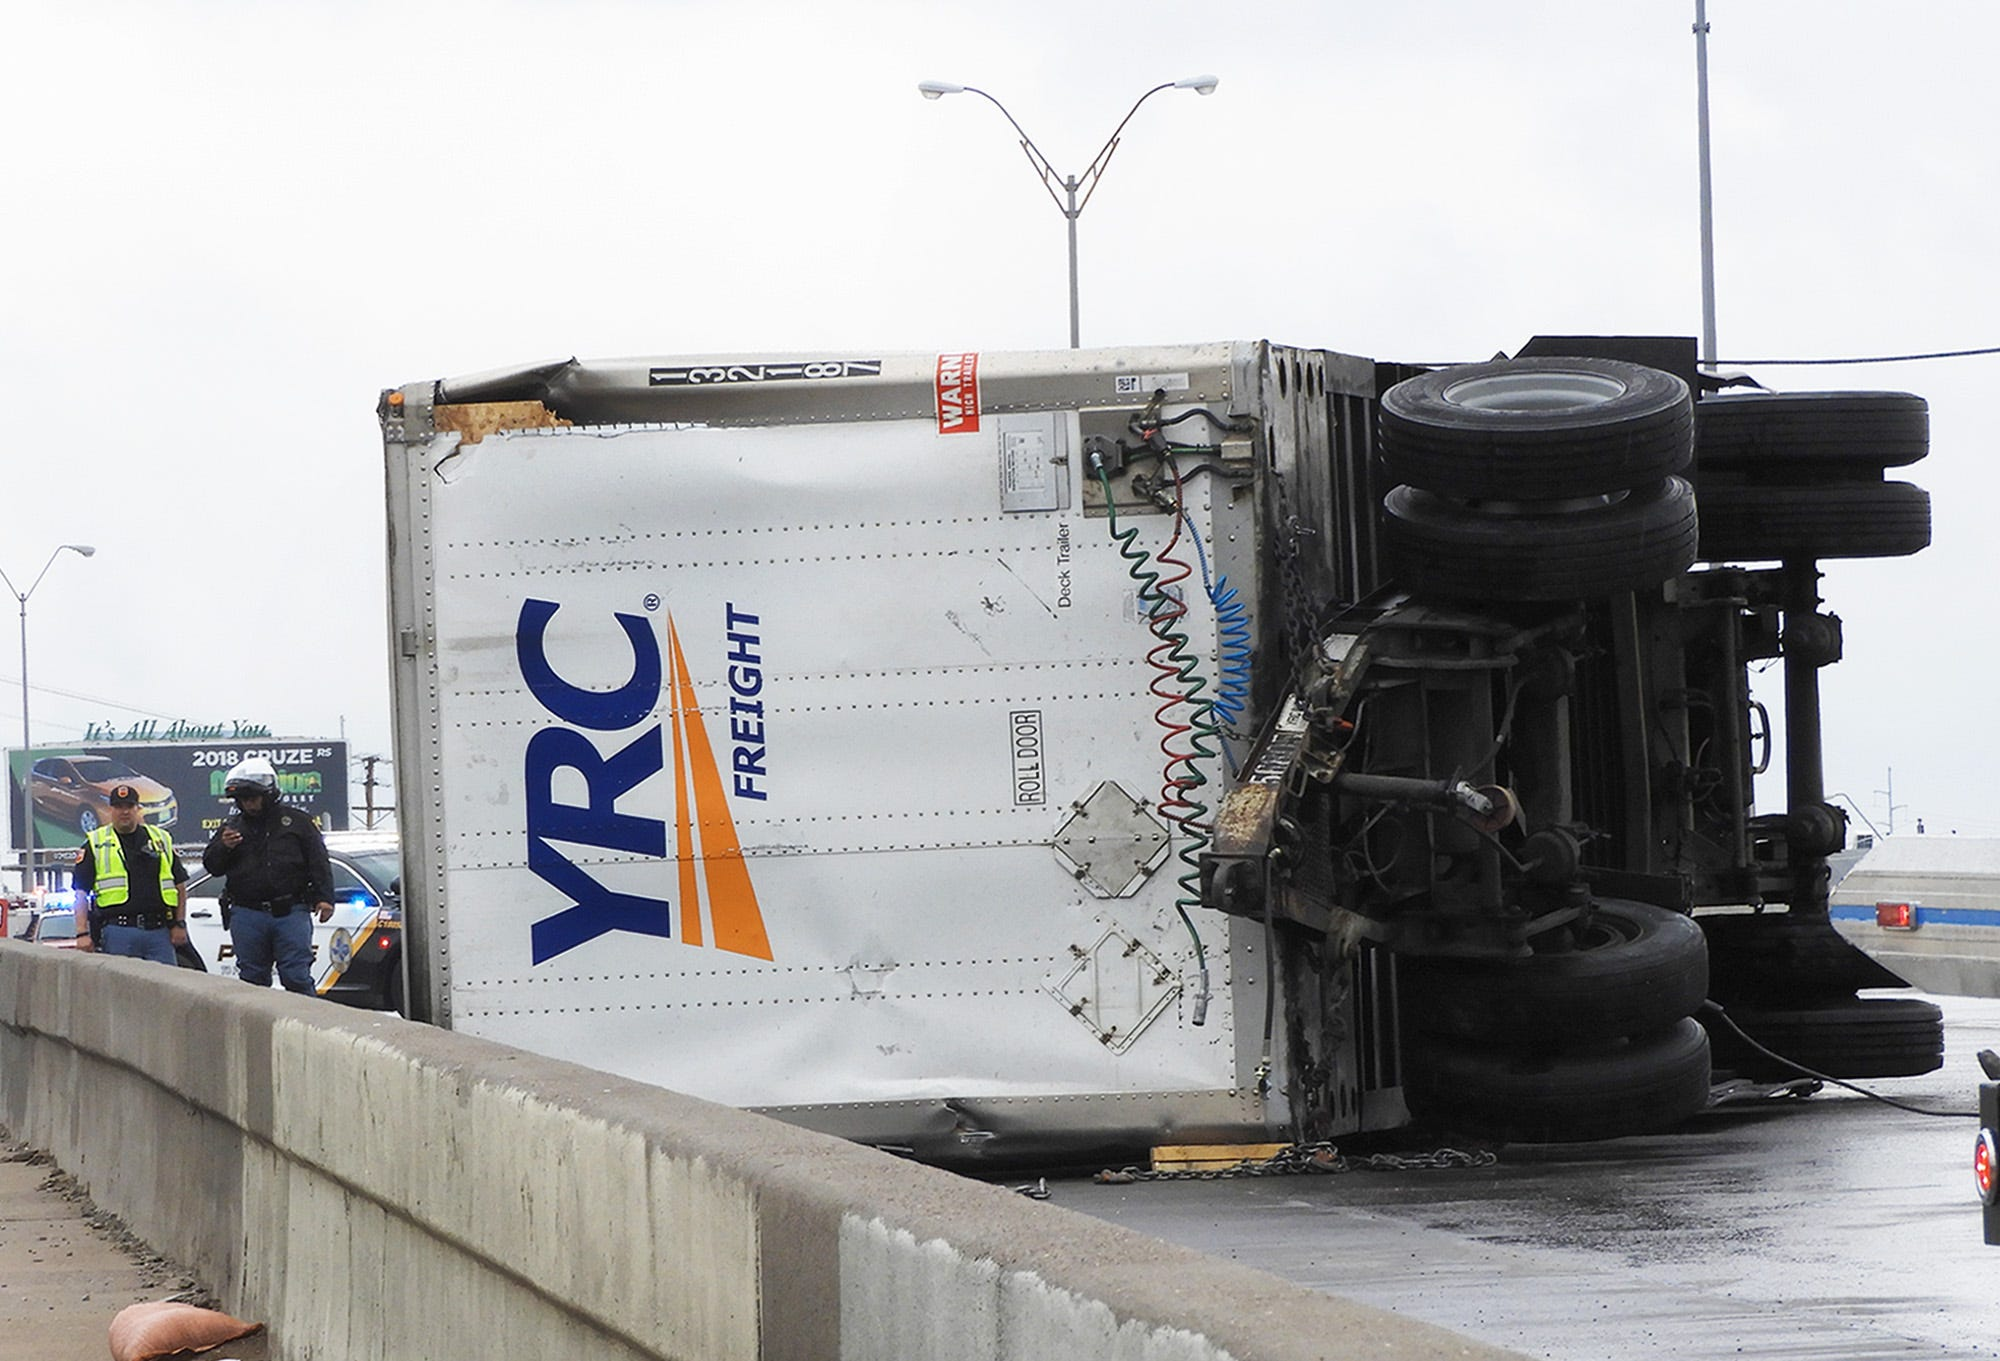 Semi-truck accident on I-10 closes freeway from Chelsea to Airway: El Paso Police | El Paso Times